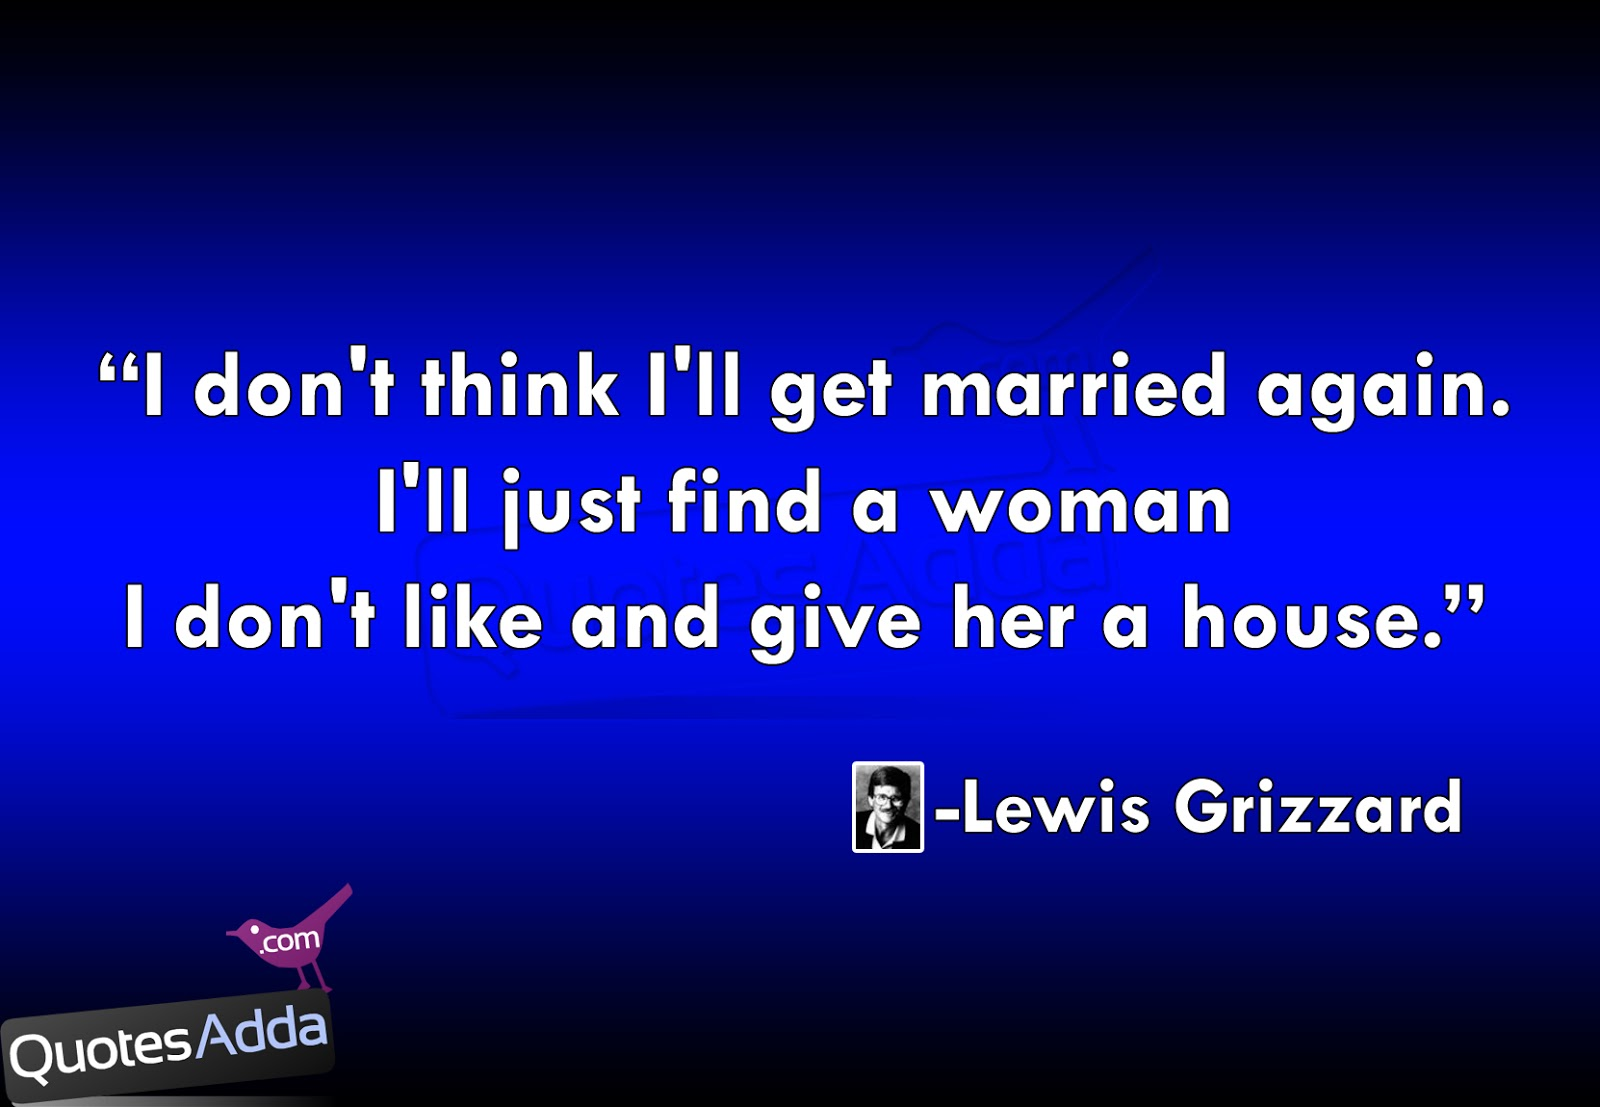 ... Famous Quotations, Lewis Grizzard's Funny Quotations ,Quotesadda.com